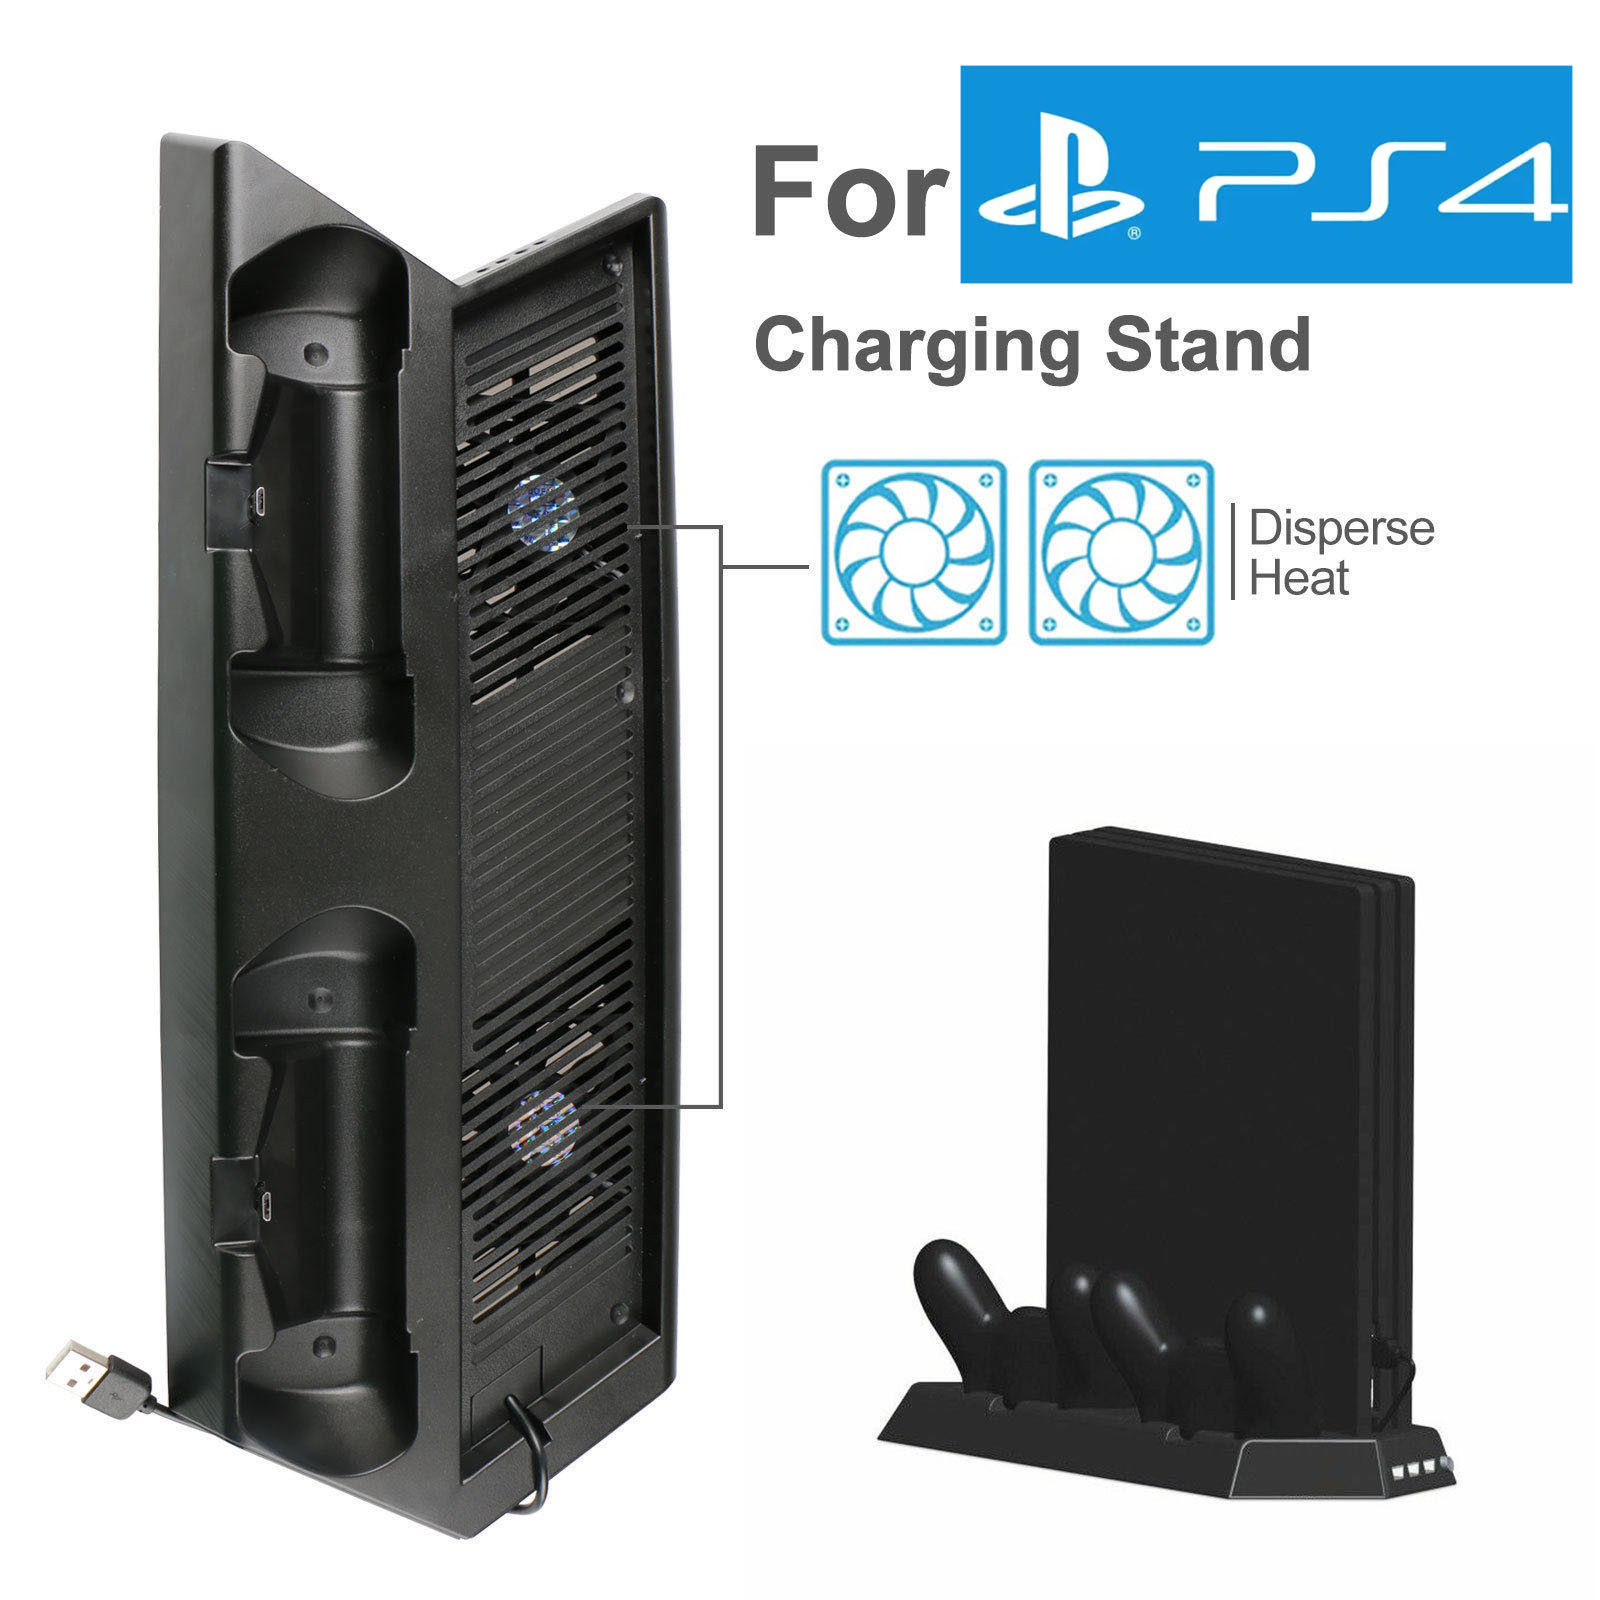 Vertical 2 High Speed Fans 2 Dual Charging Station Dock Charger for PS4 Pro LED